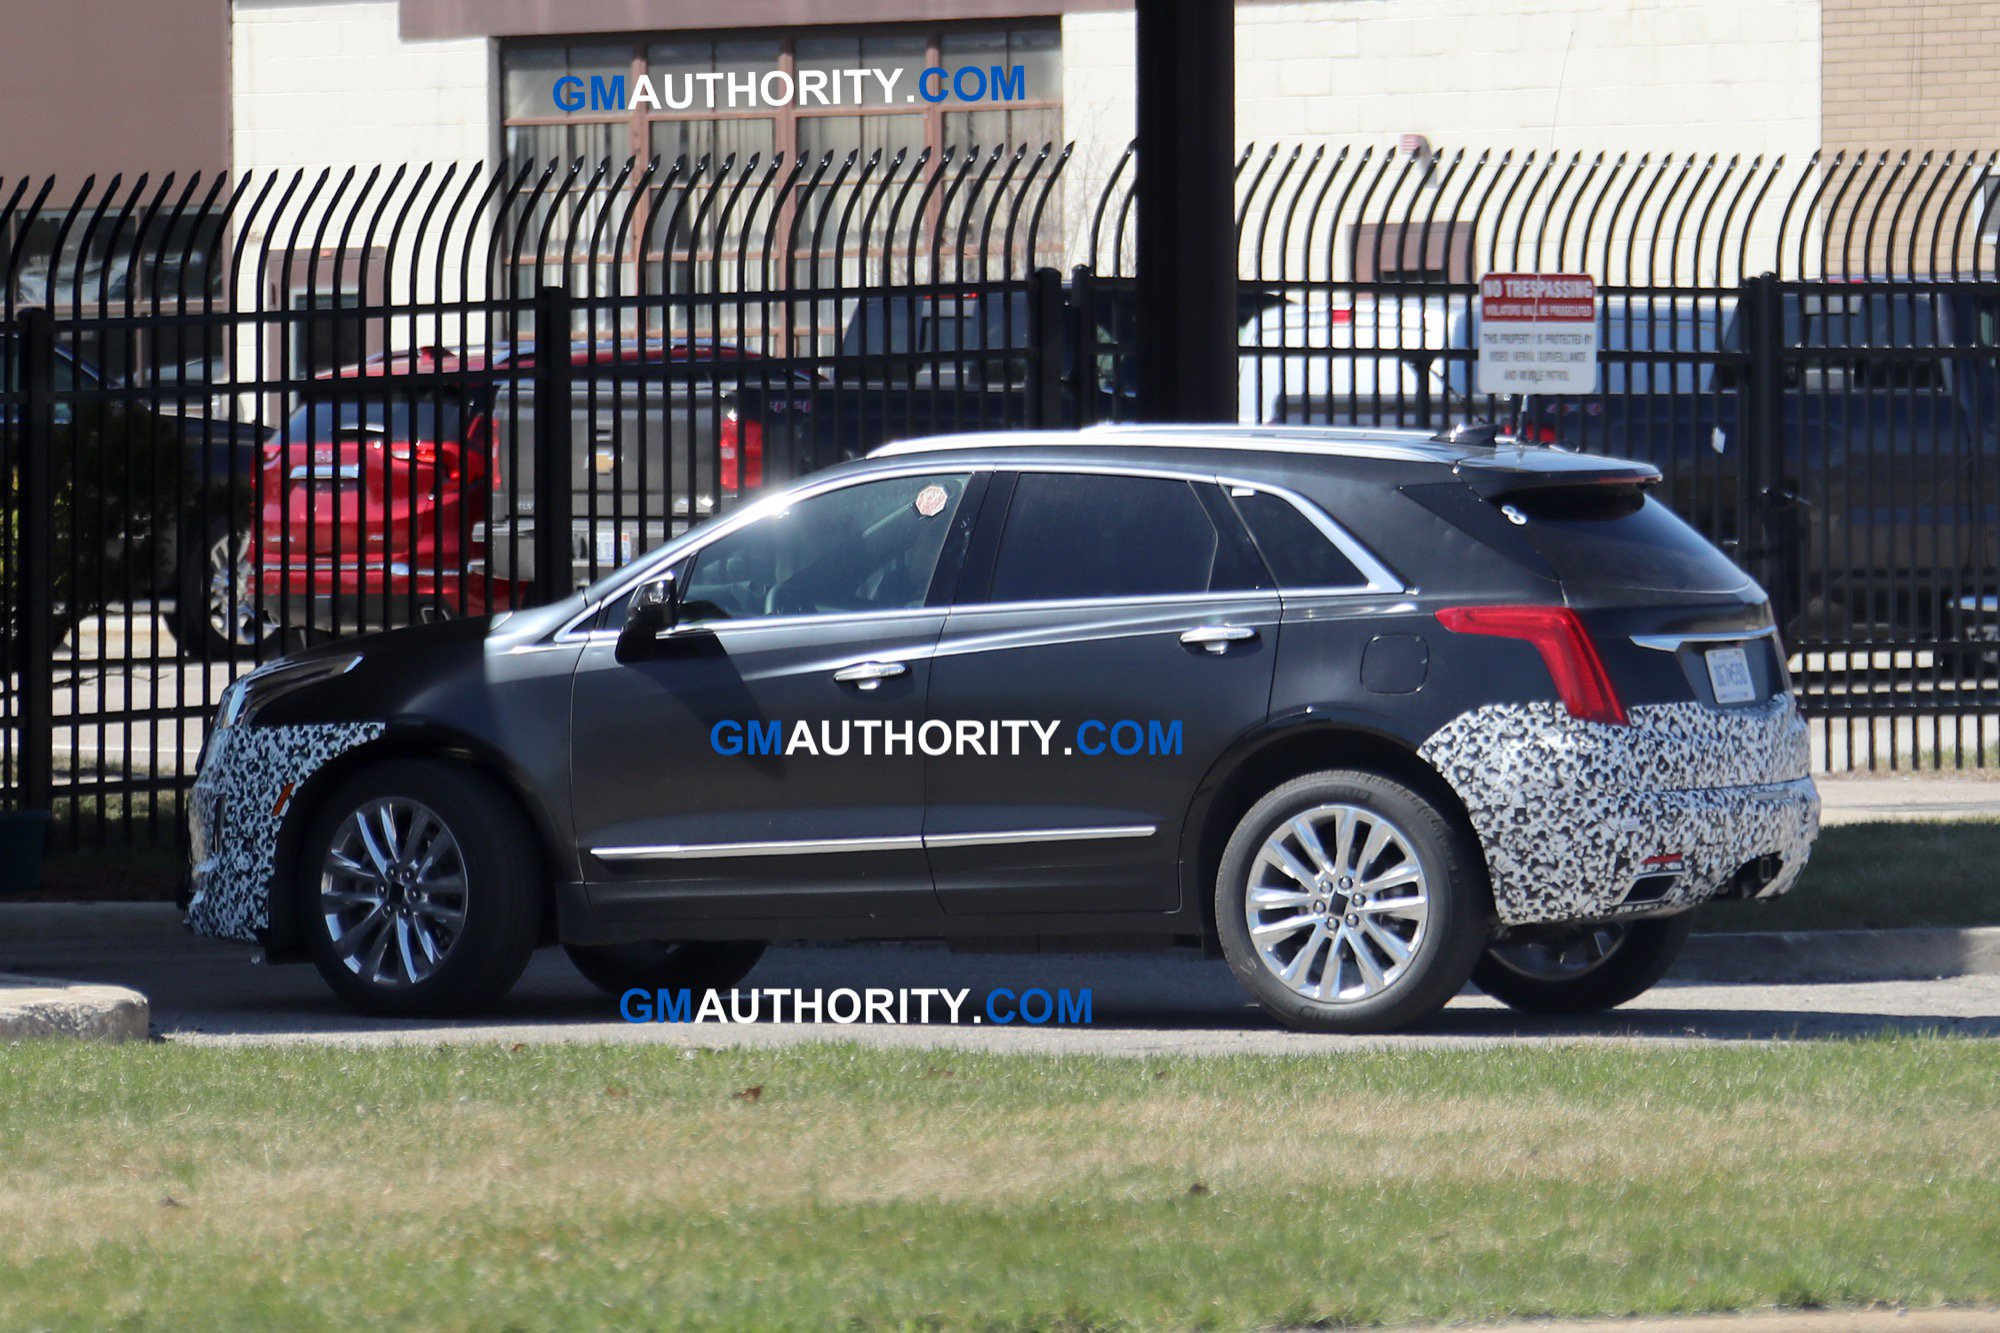 47 All New 2020 Spy Shots Cadillac Xt5 History